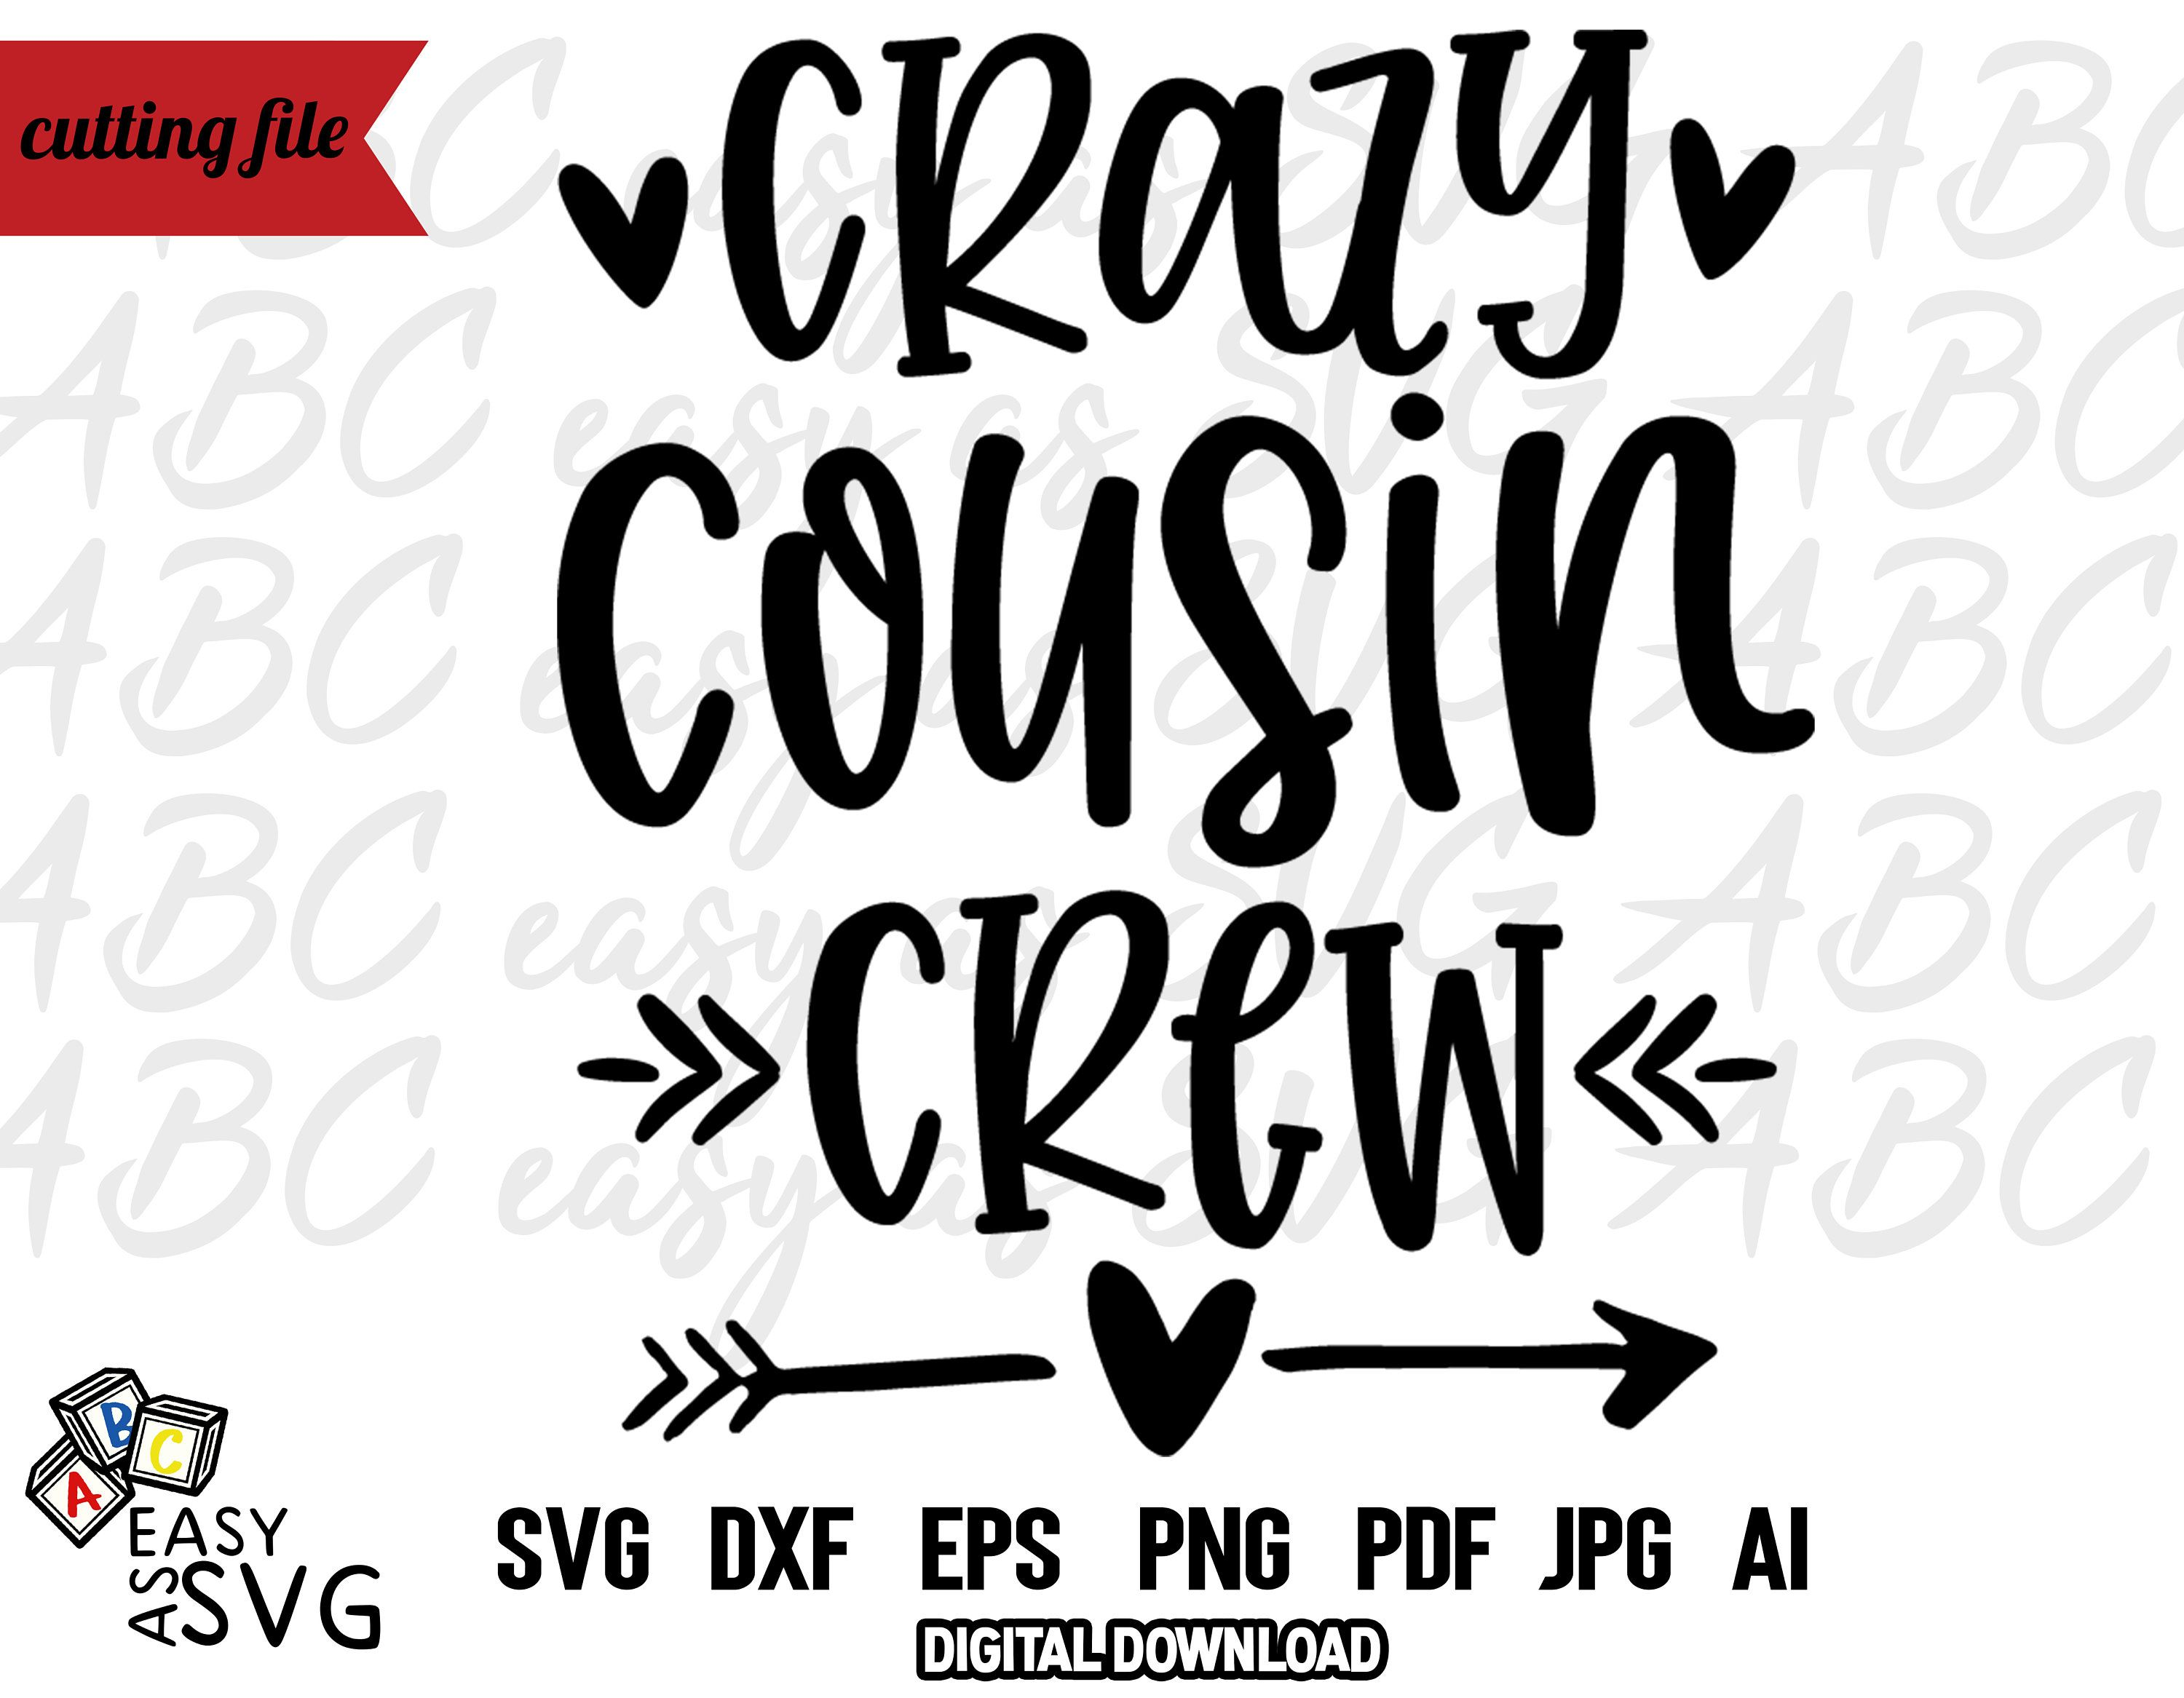 Crazy Cousin Crew Svg Cousin Crew Svg New To The Crew Svg Newborn Baby Svg Newborn Baby Tshirt Svg Baby Bodysuit Svg New Cousin Svg Crazy Cousins Baby Svg Baby Tshirts